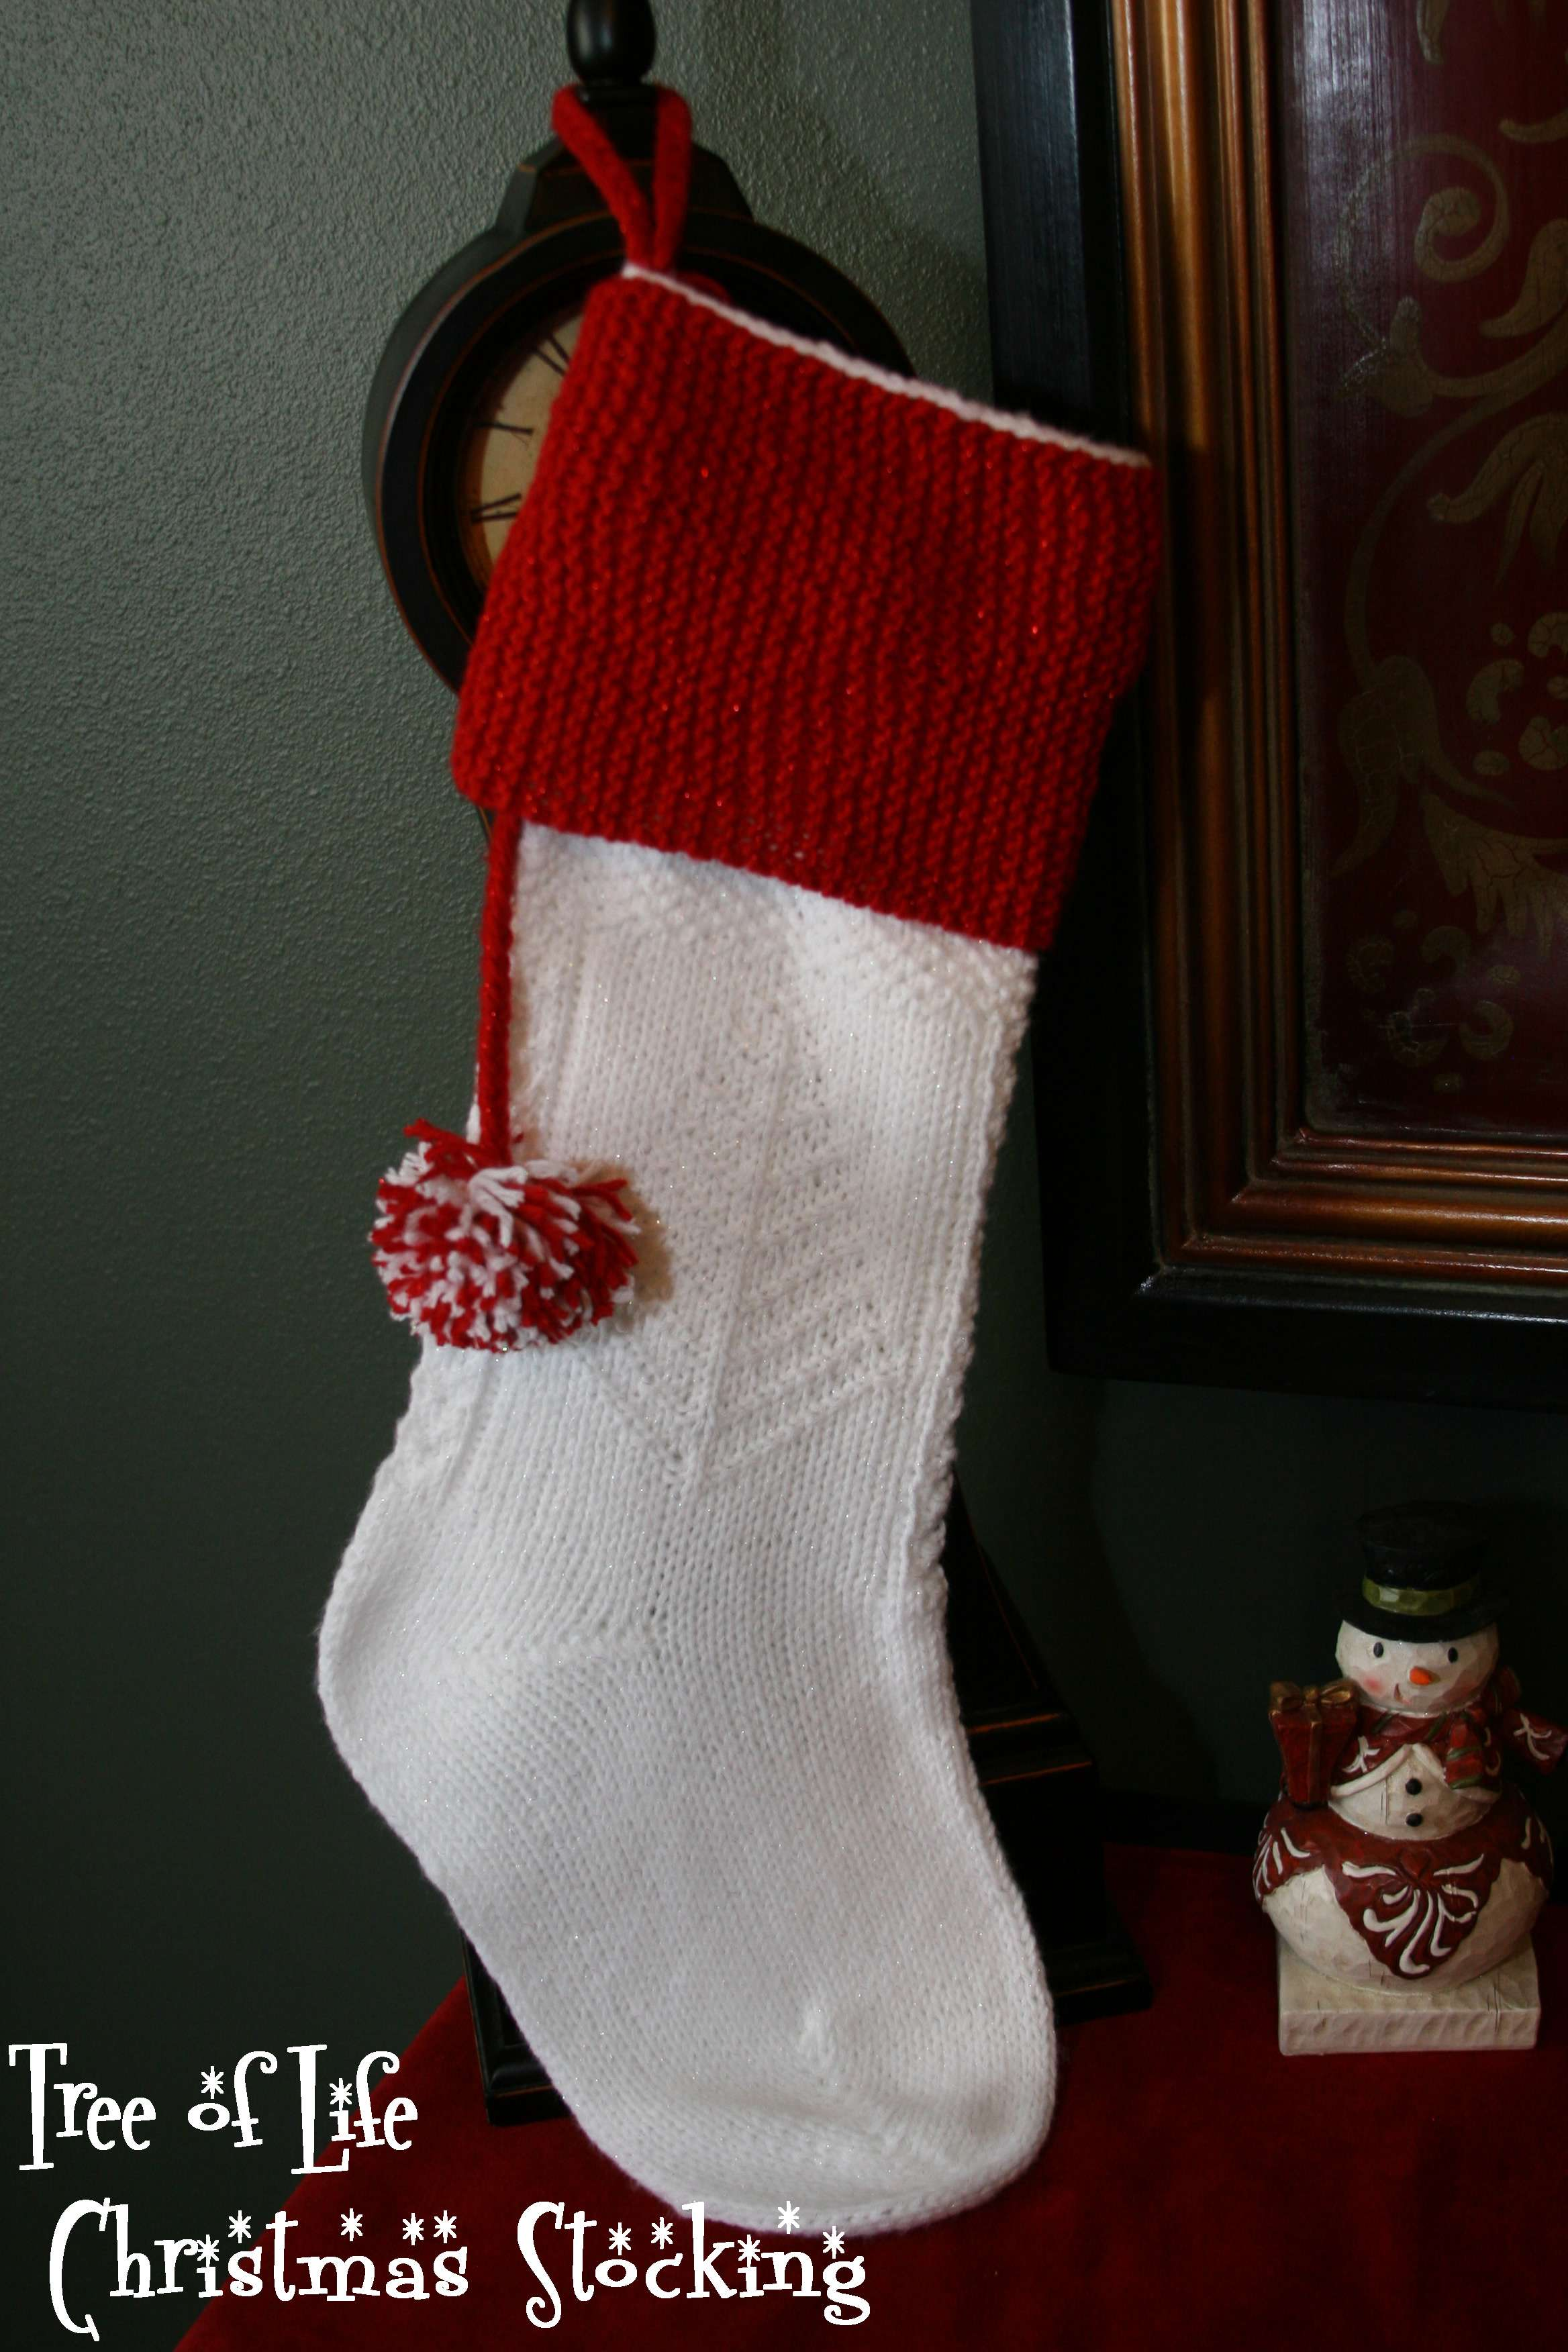 Knit Christmas Stockings Patterns : Happy Holidays!!! Christmas Stocking Pattern   Knitting Board Blog